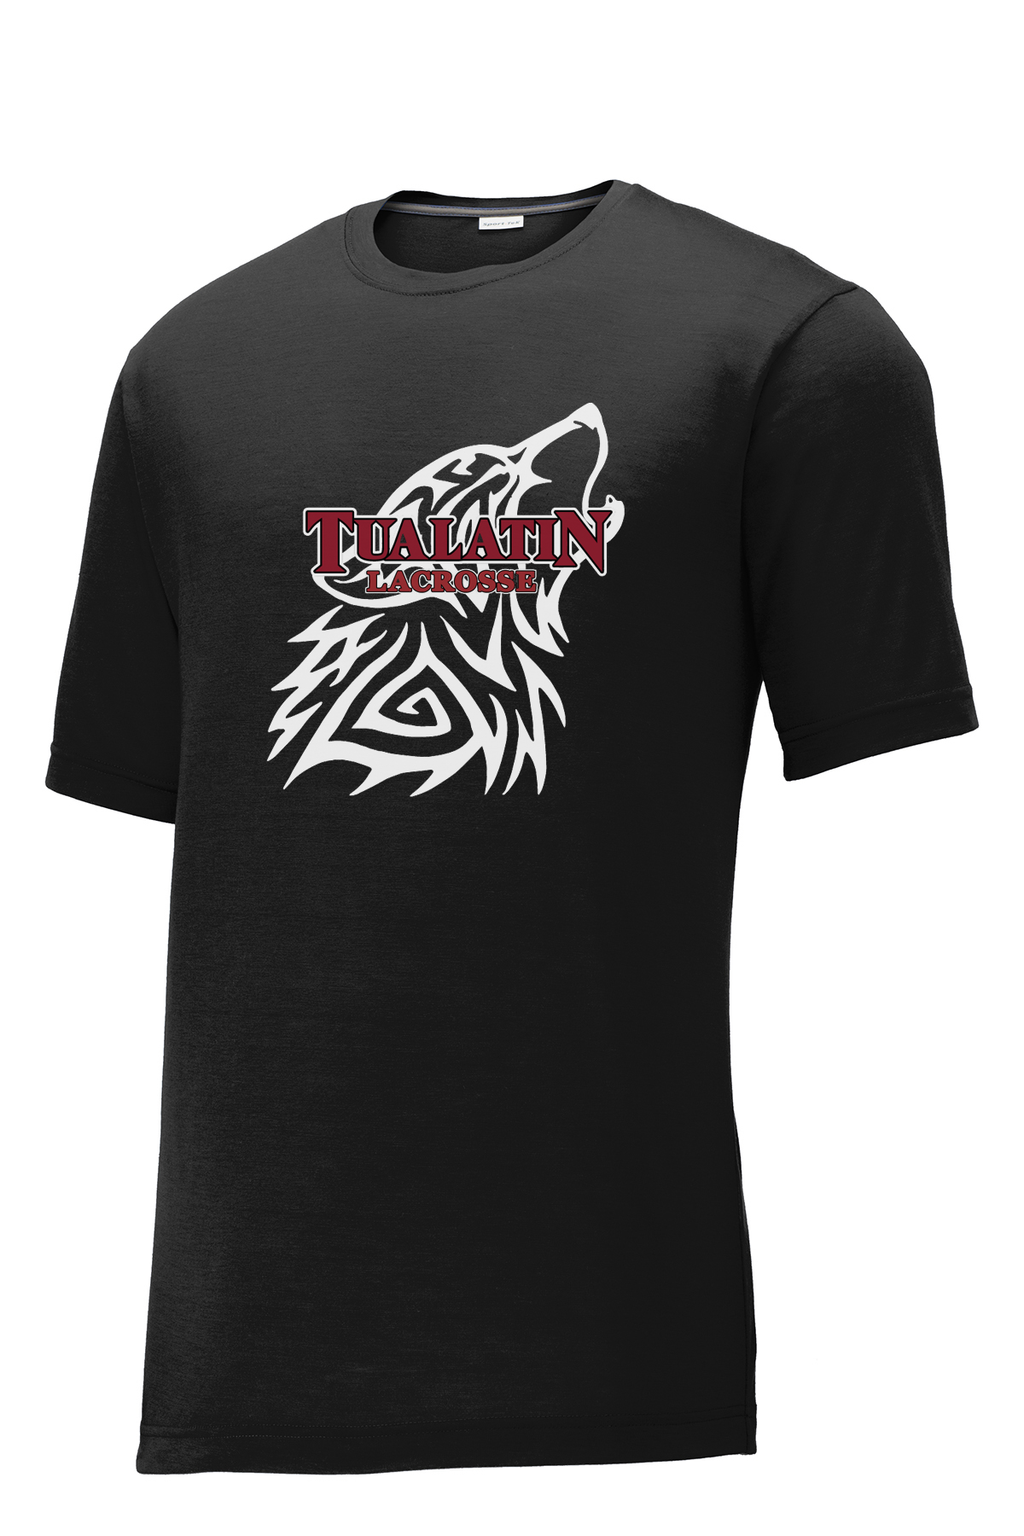 Tualatin Black CottonTouch Performance T-Shirt